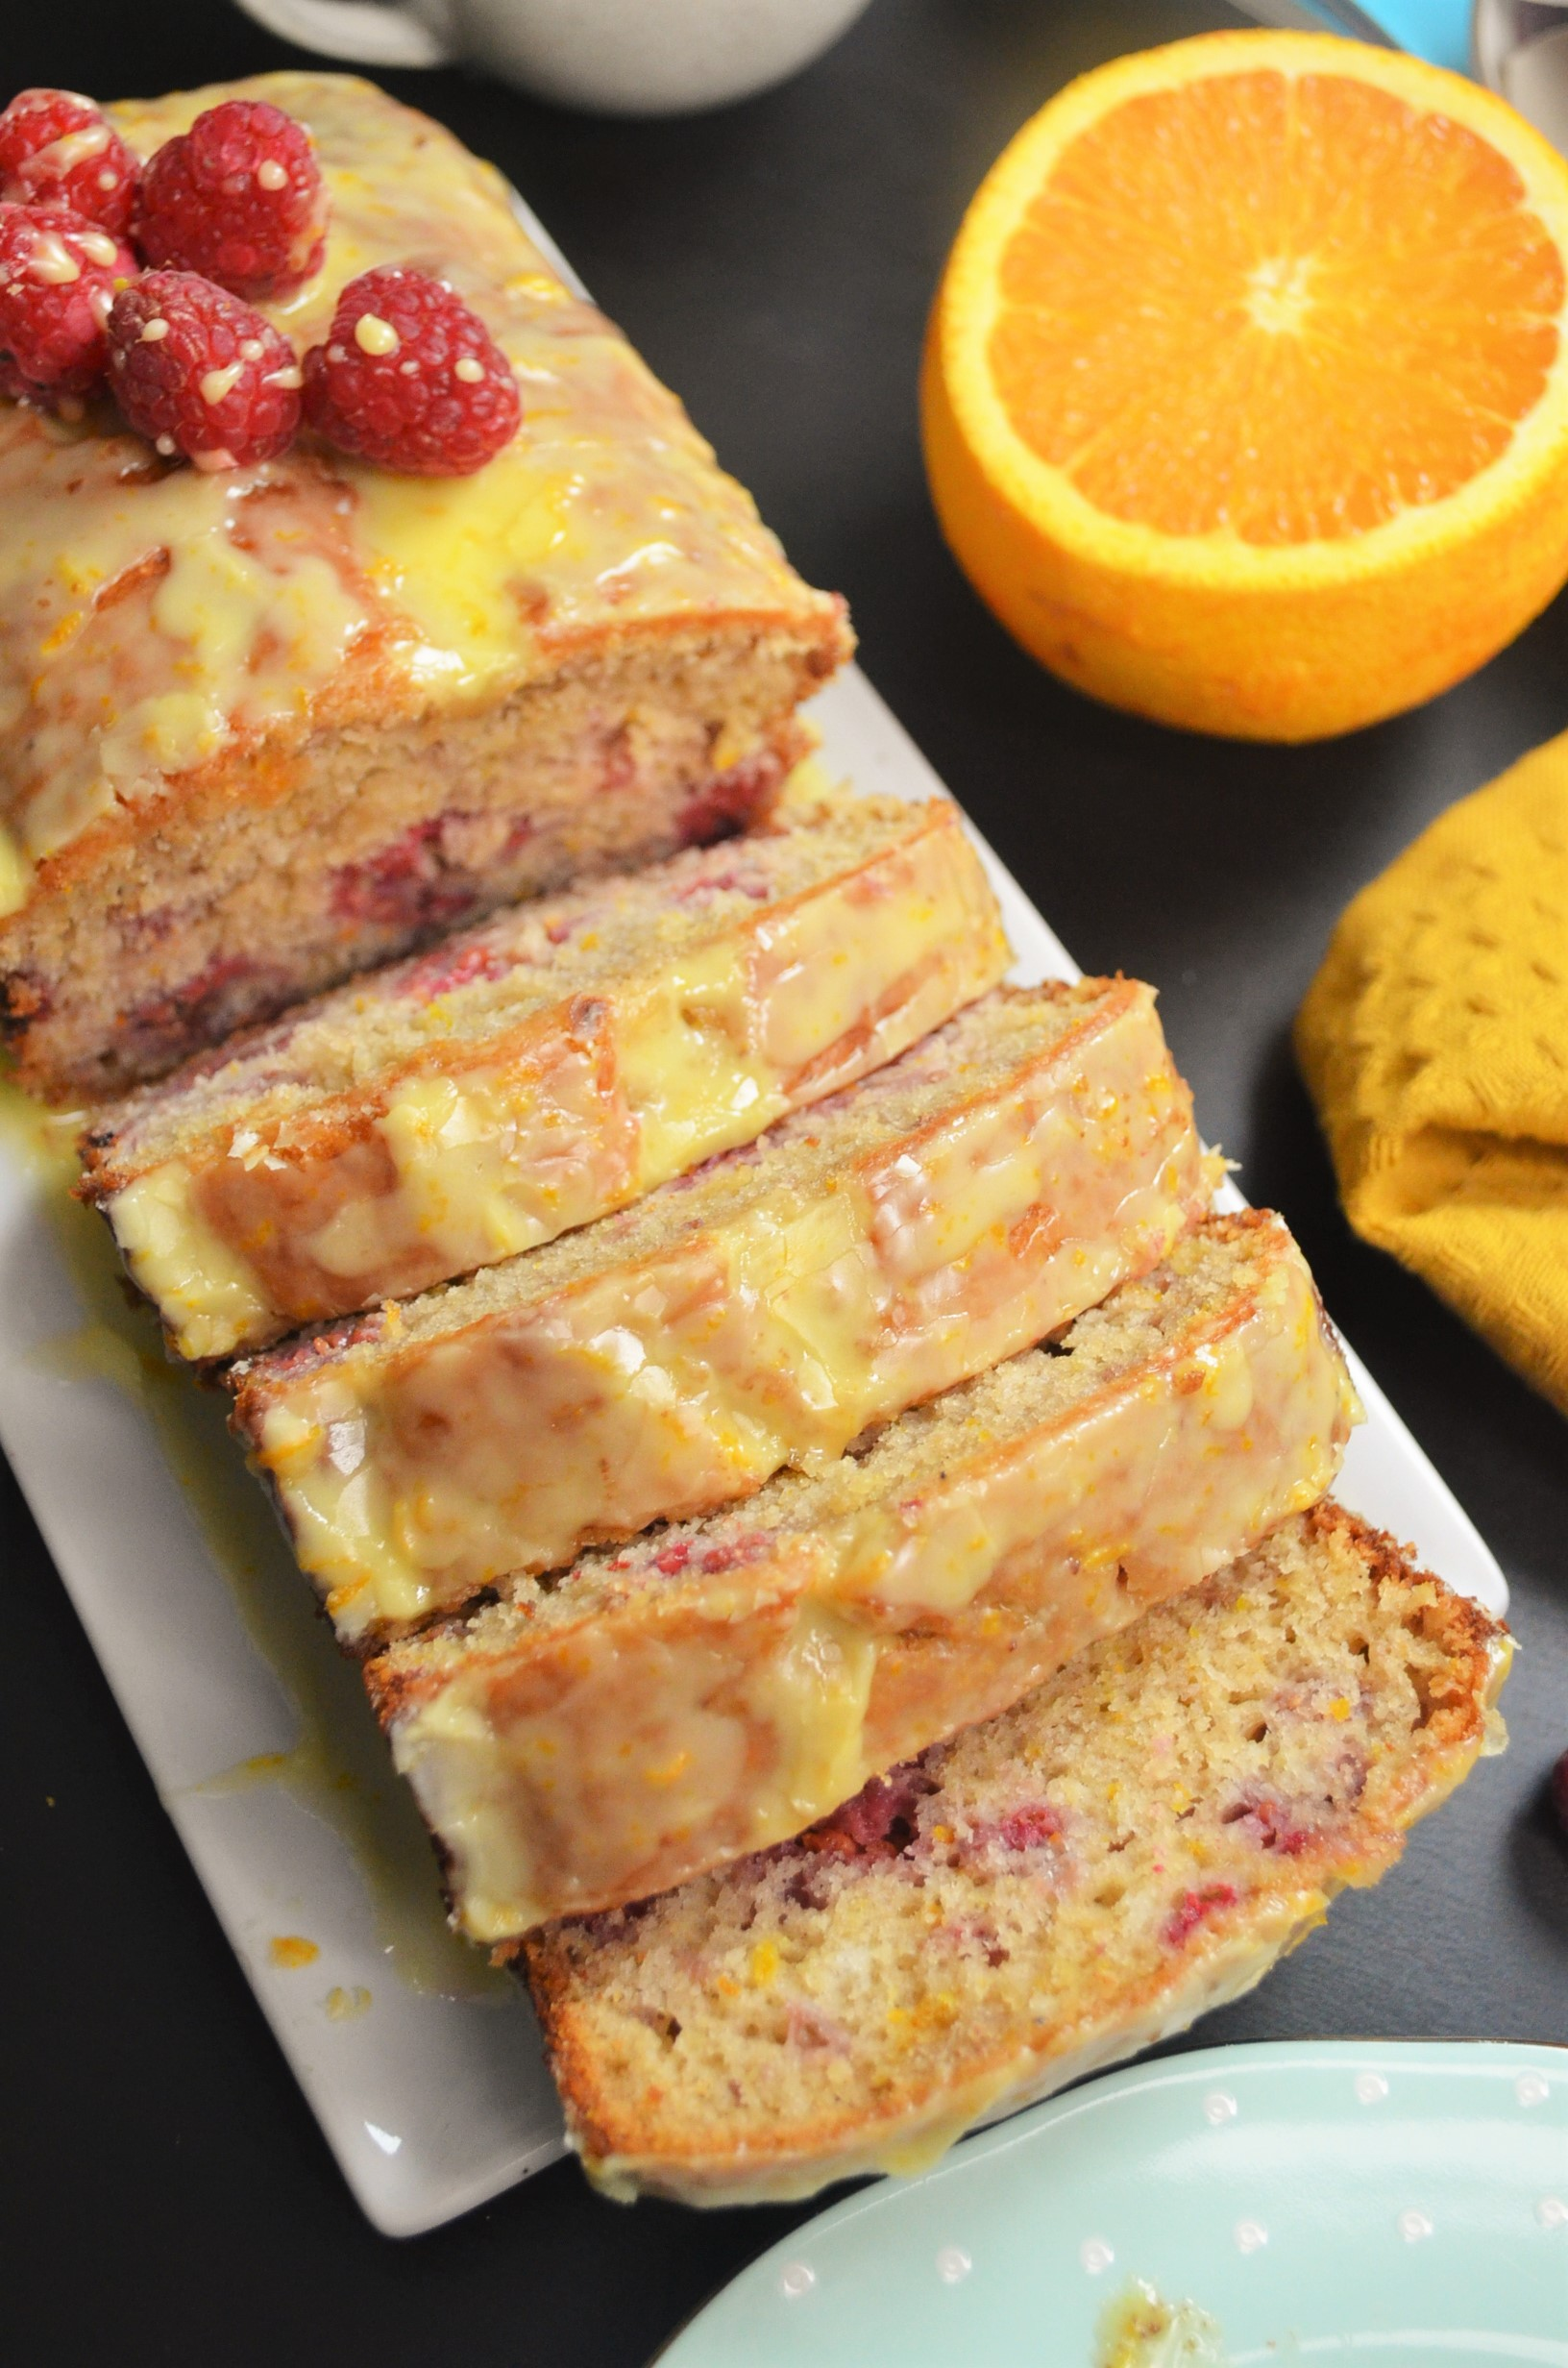 Orange and Raspberry Loaf with Orange Glaze